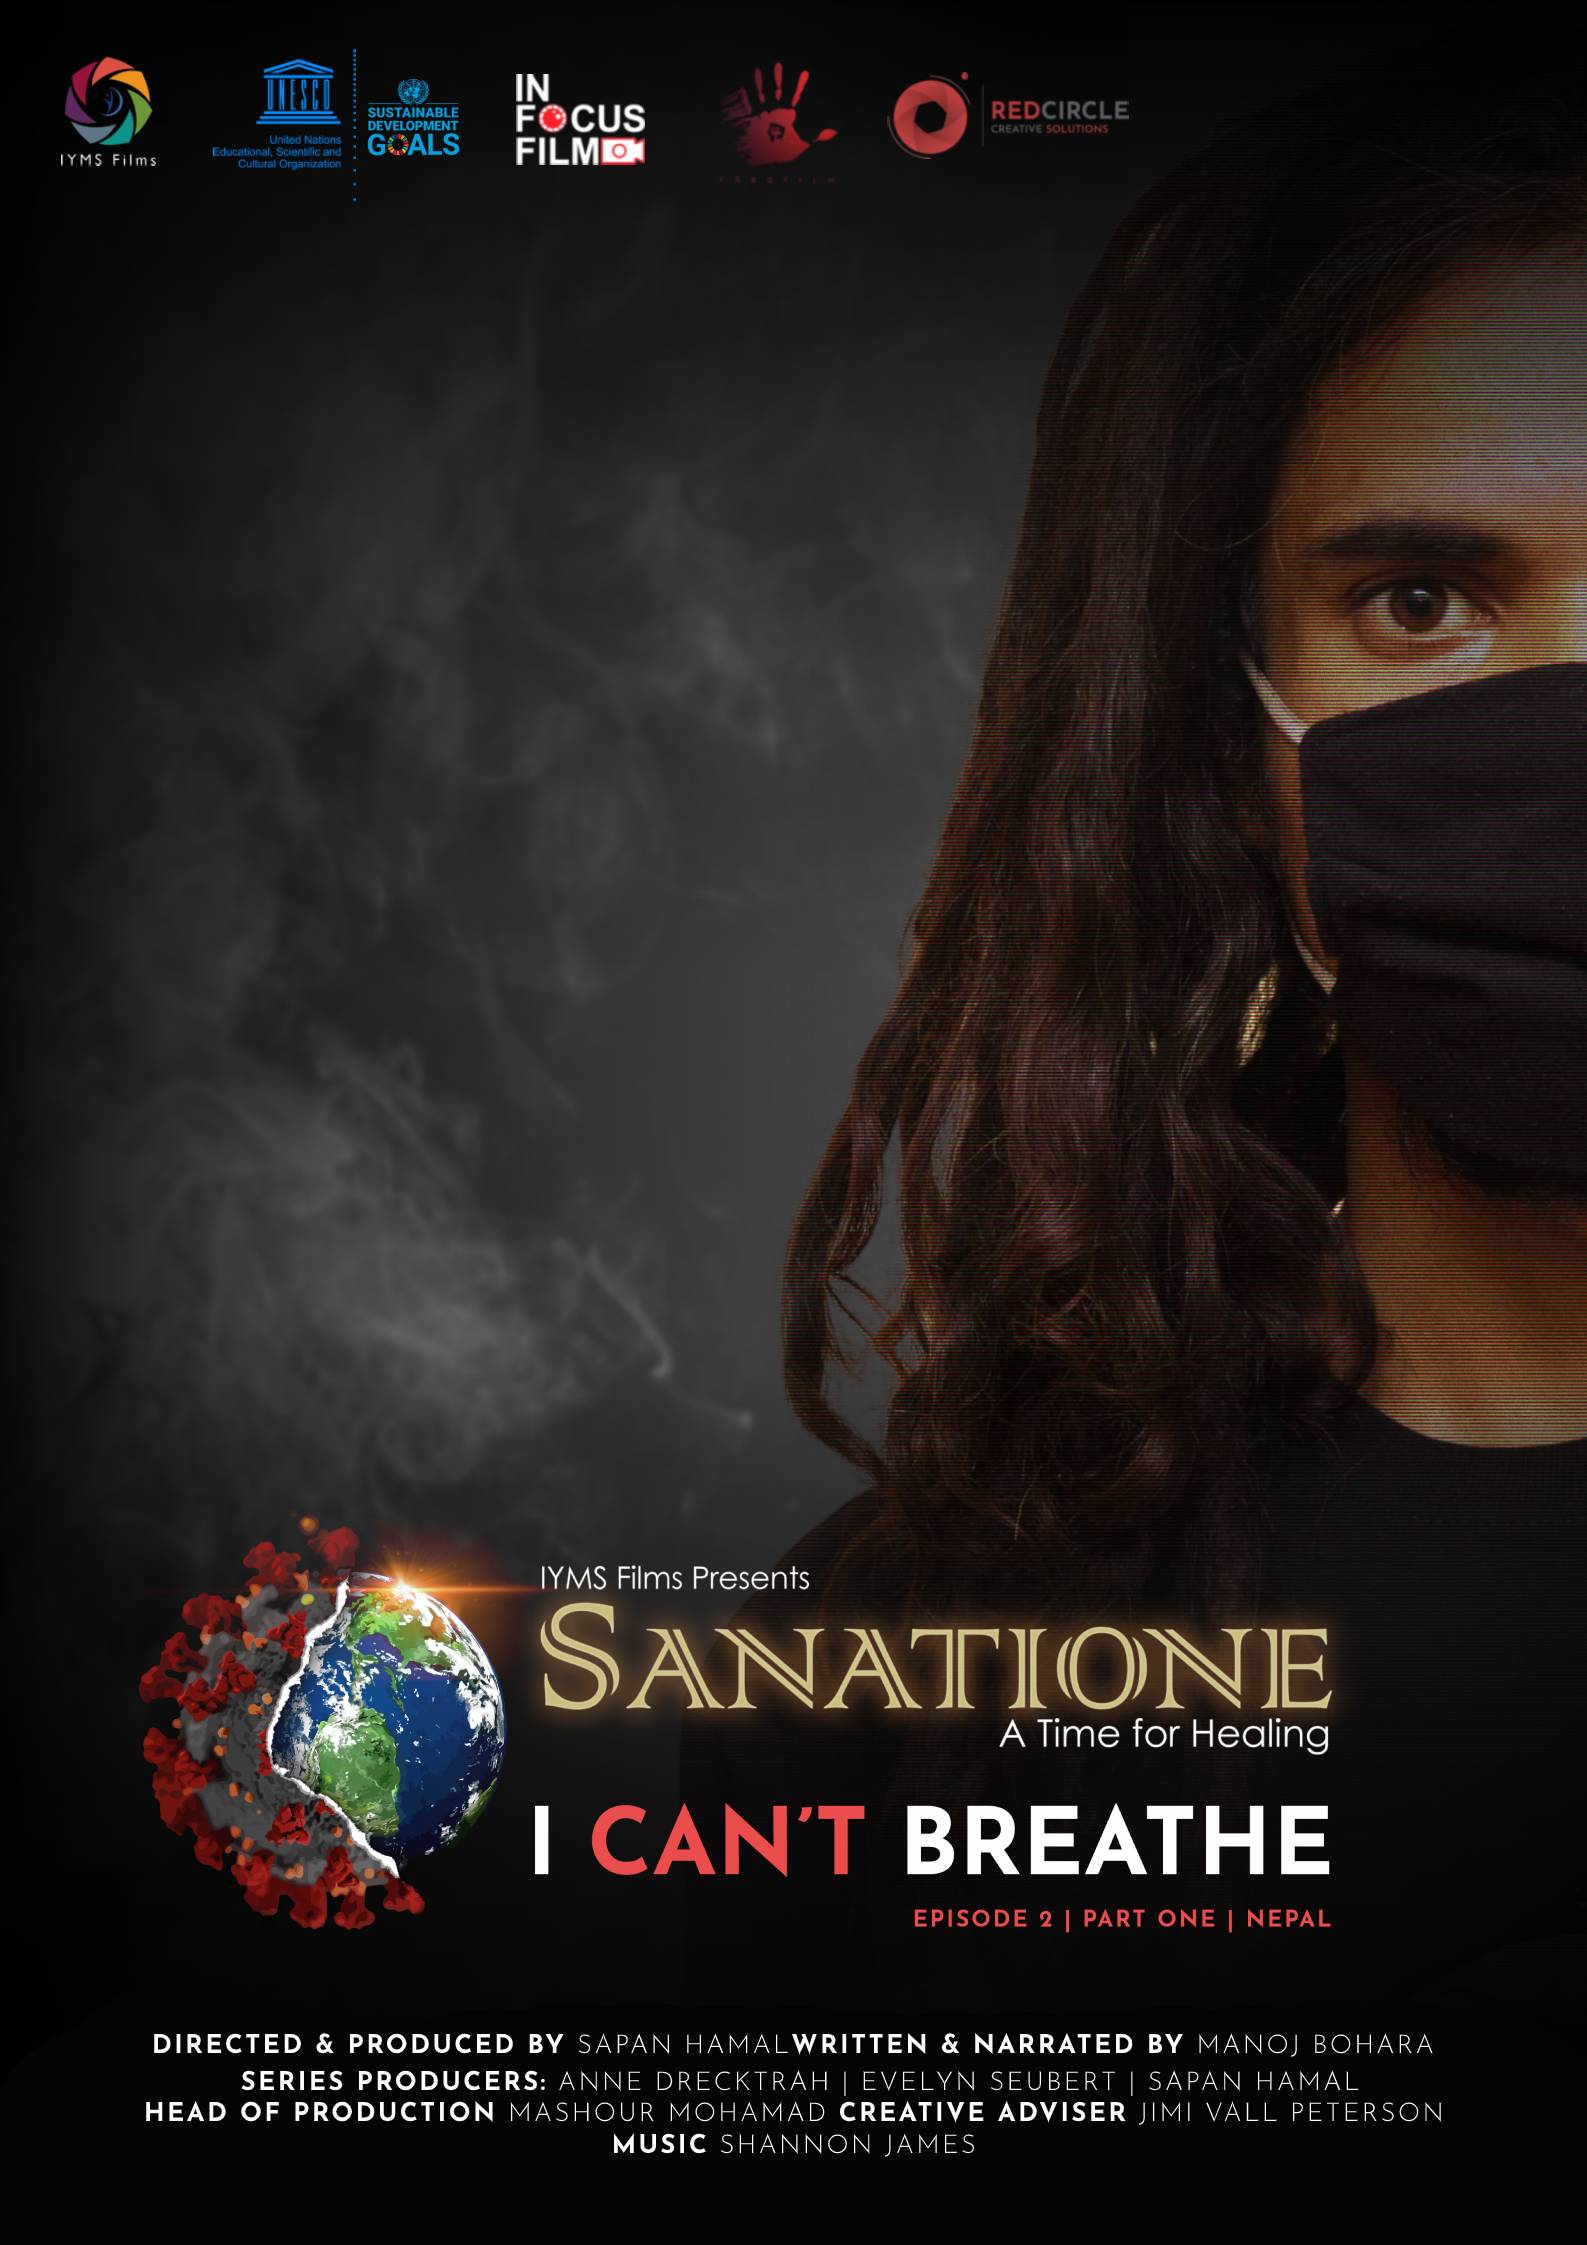 2. I Can't Breathe (Part 1)